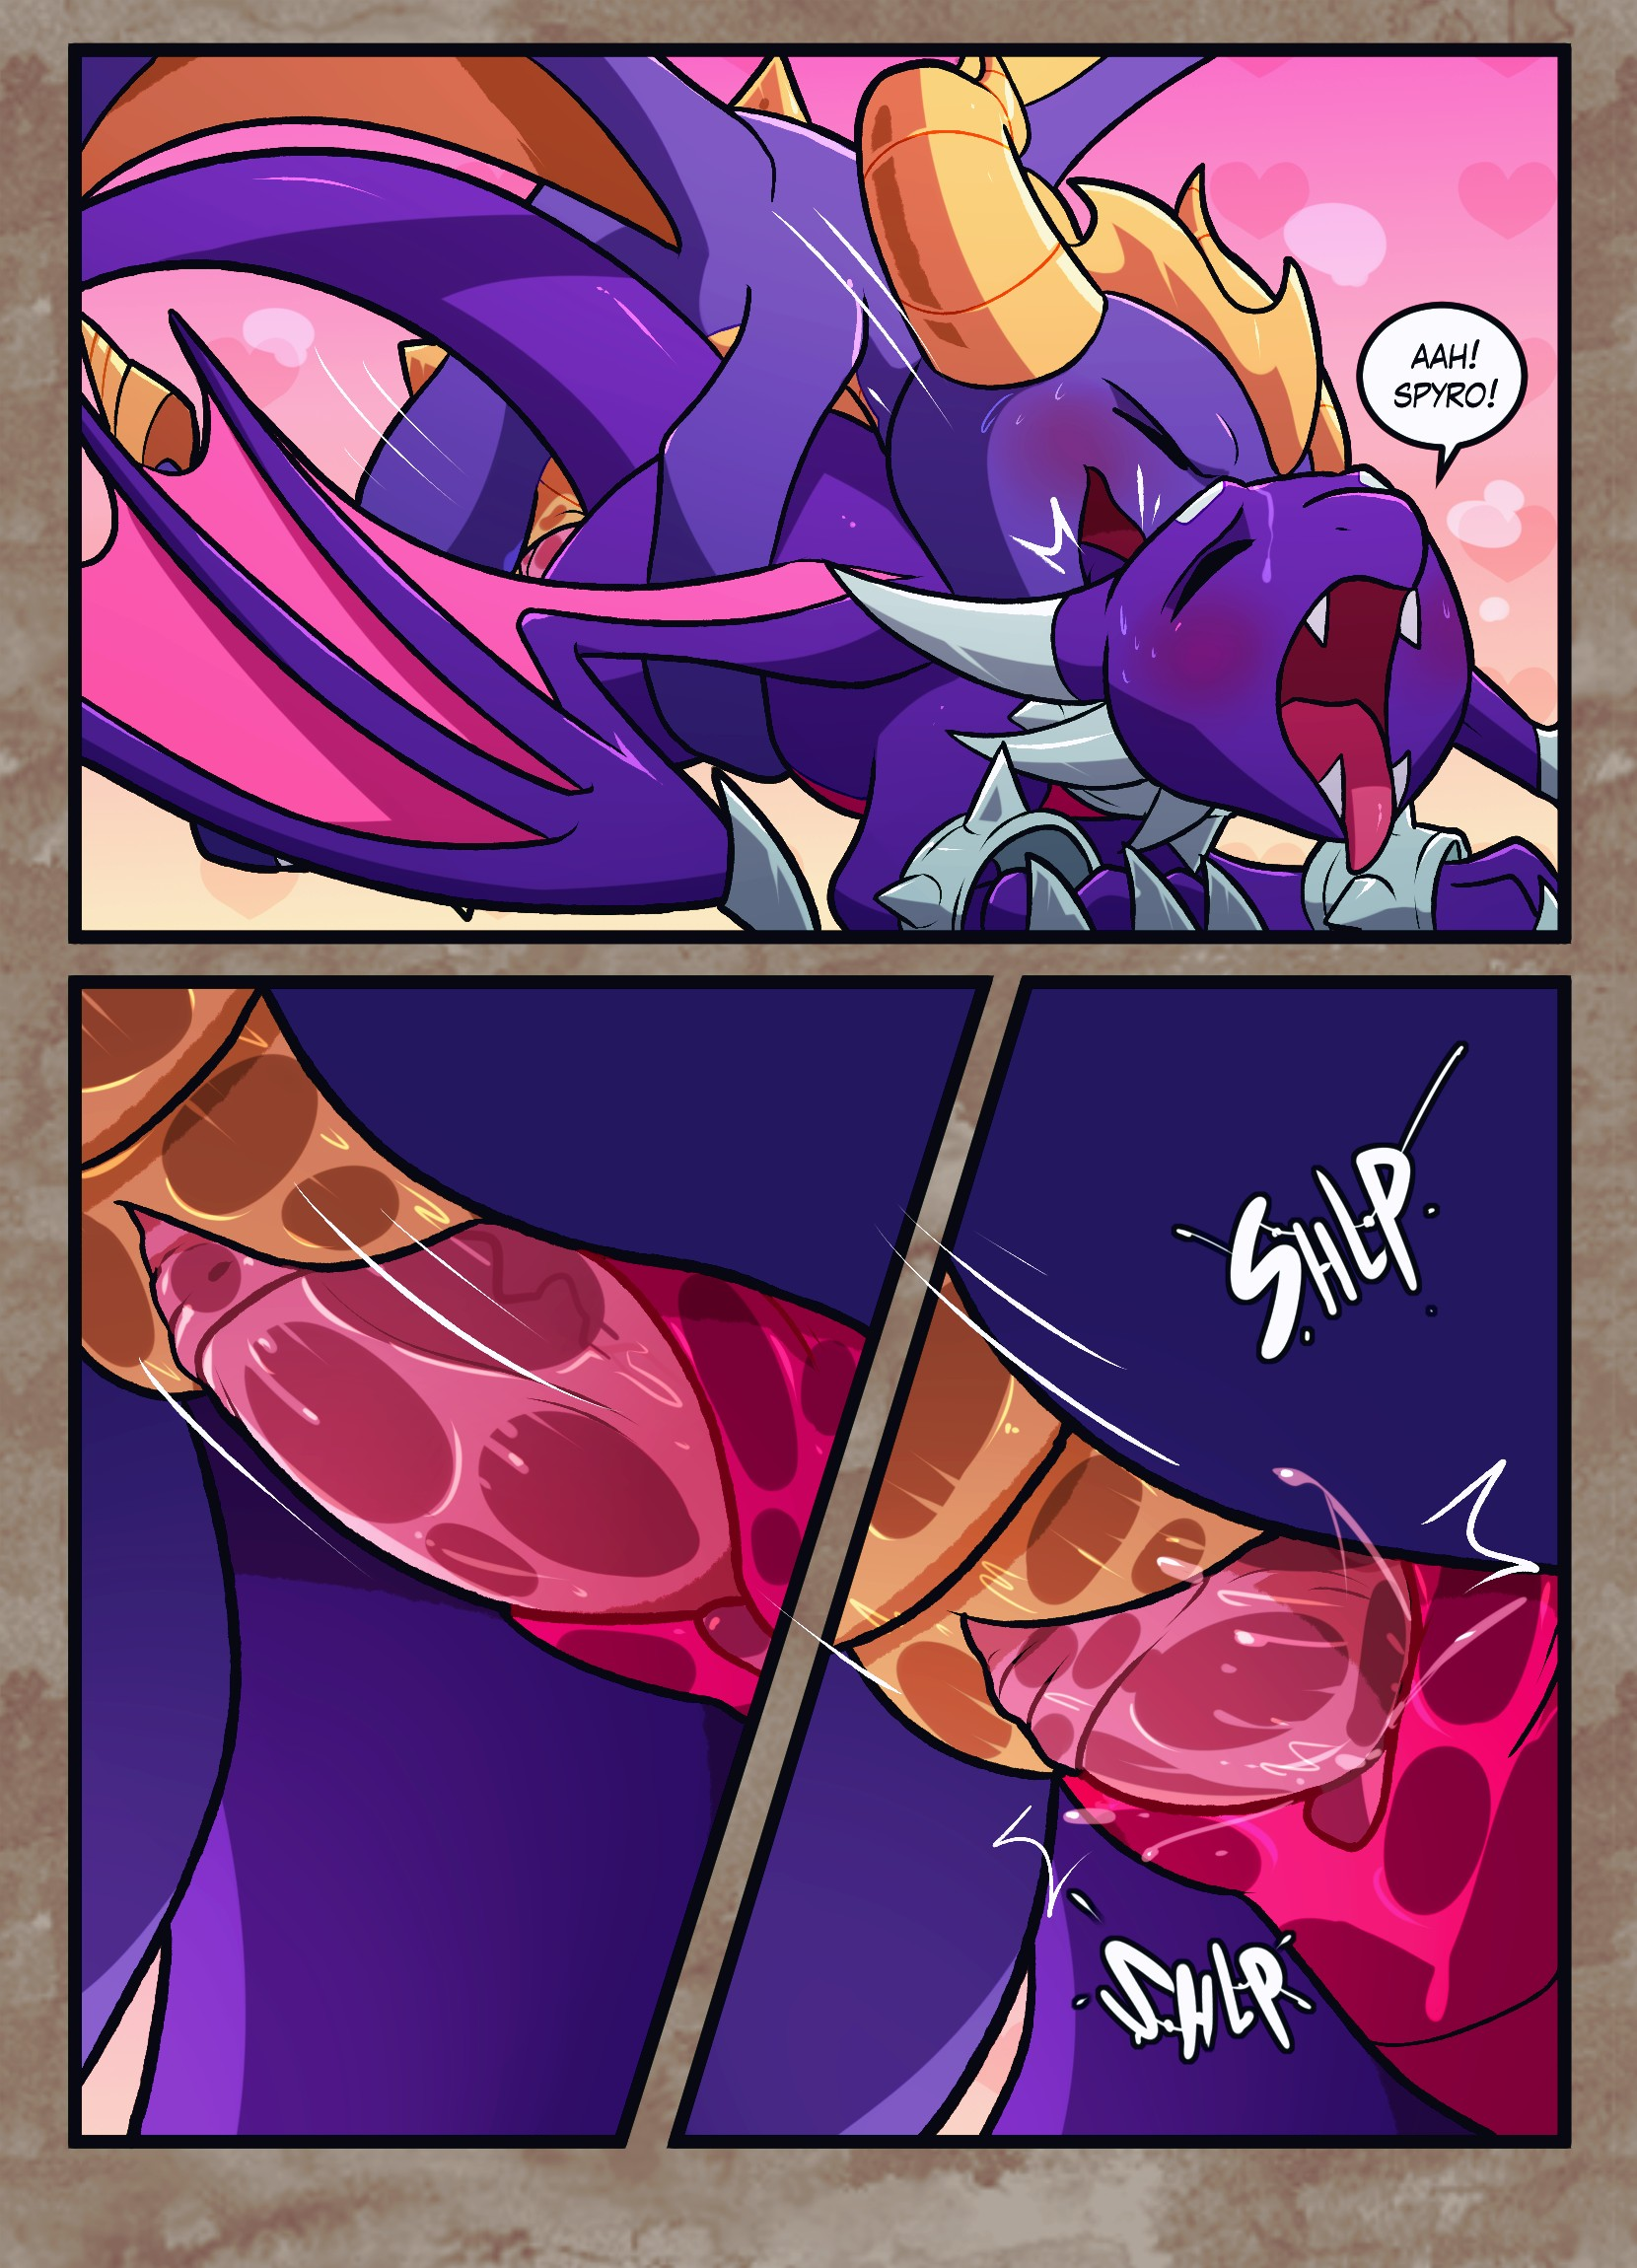 A Friend In Need porn comic page 005